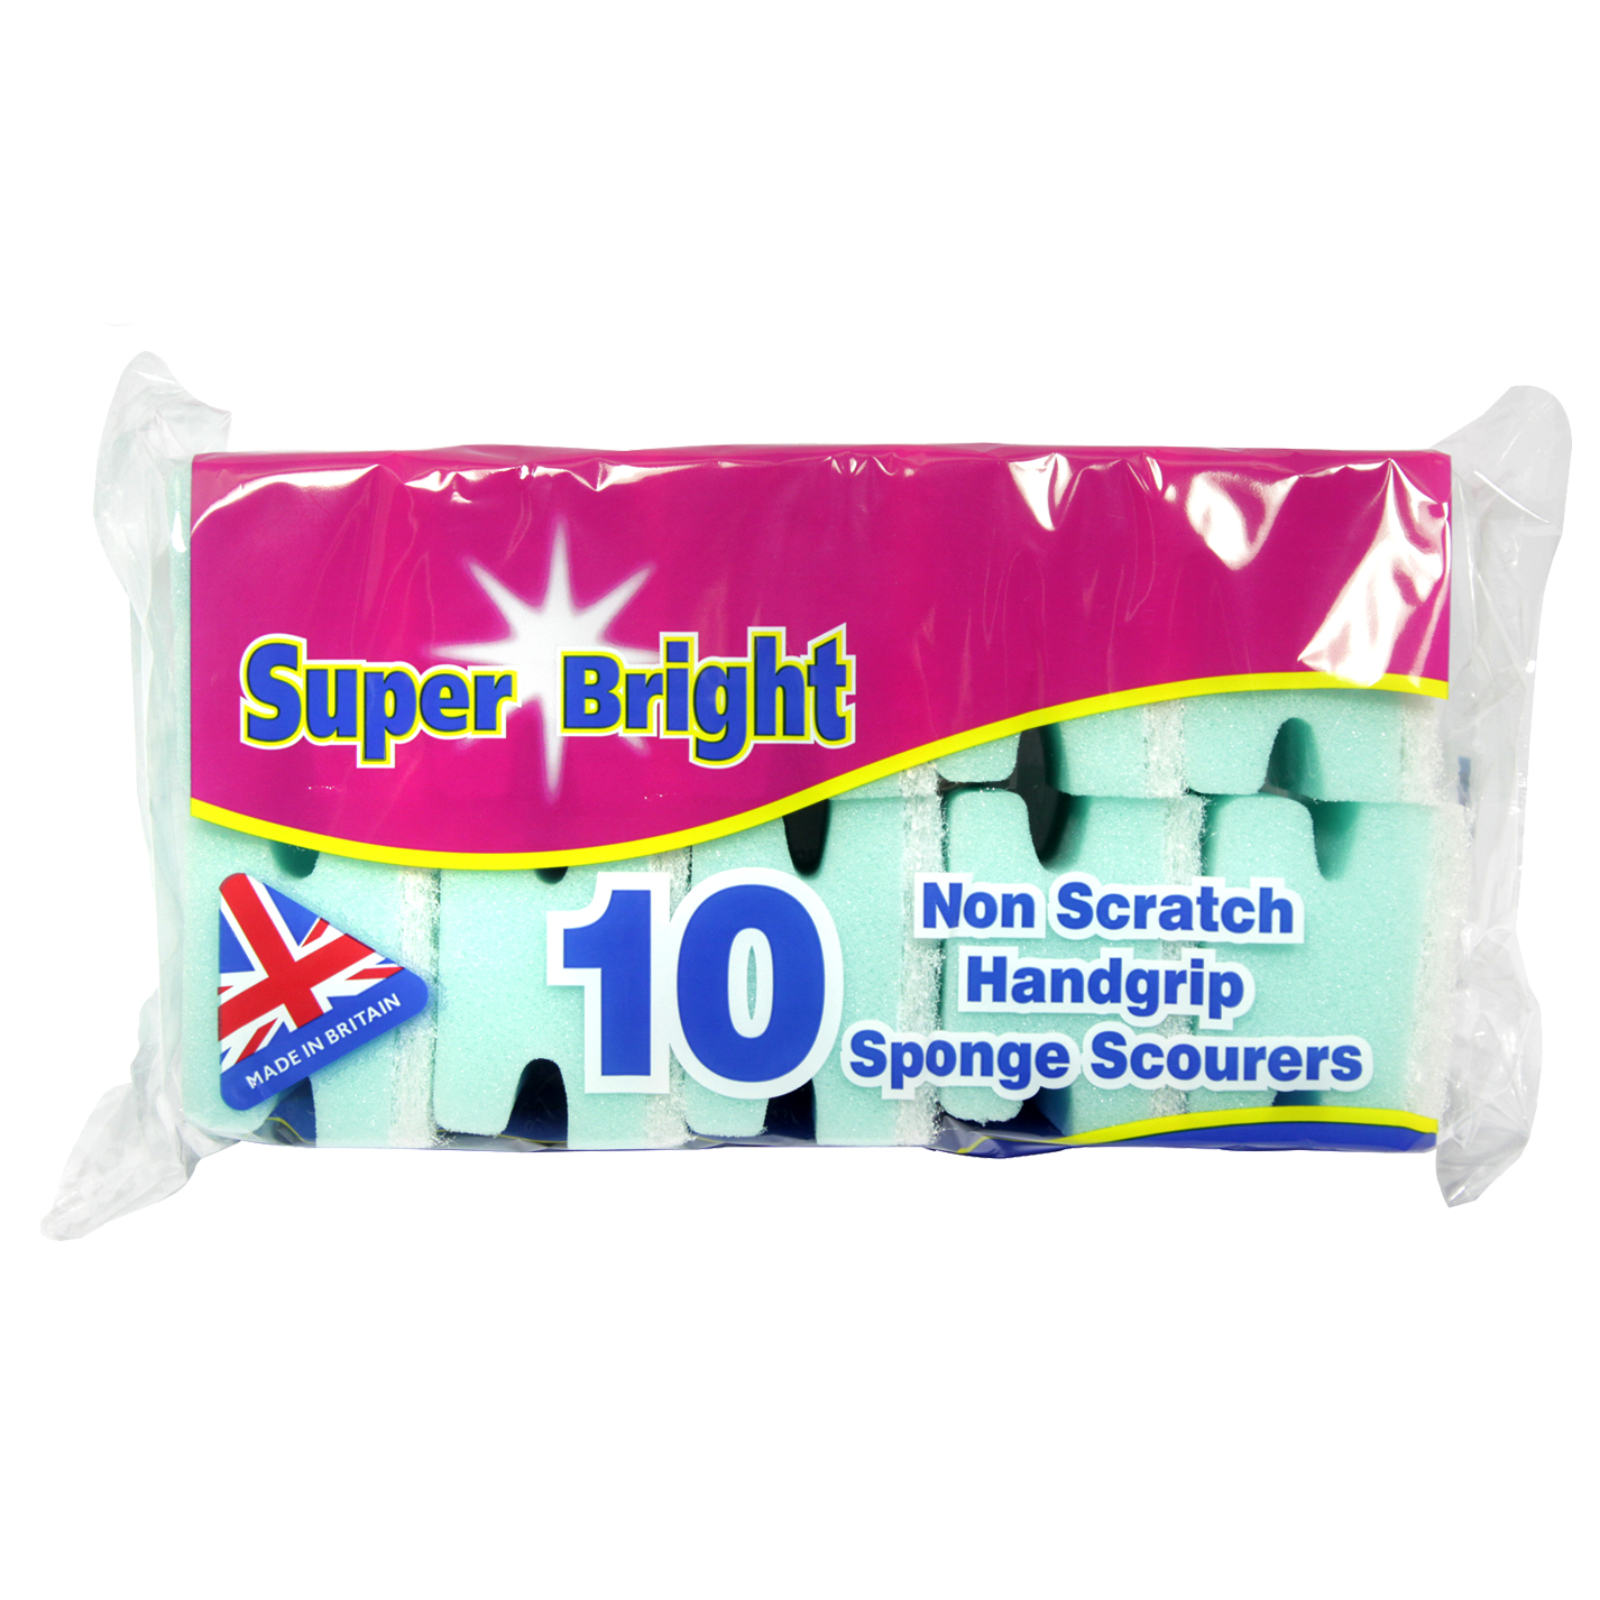 SUPERBRIGHT 10 HAND GRIP SCOURER NON-SCRATCH